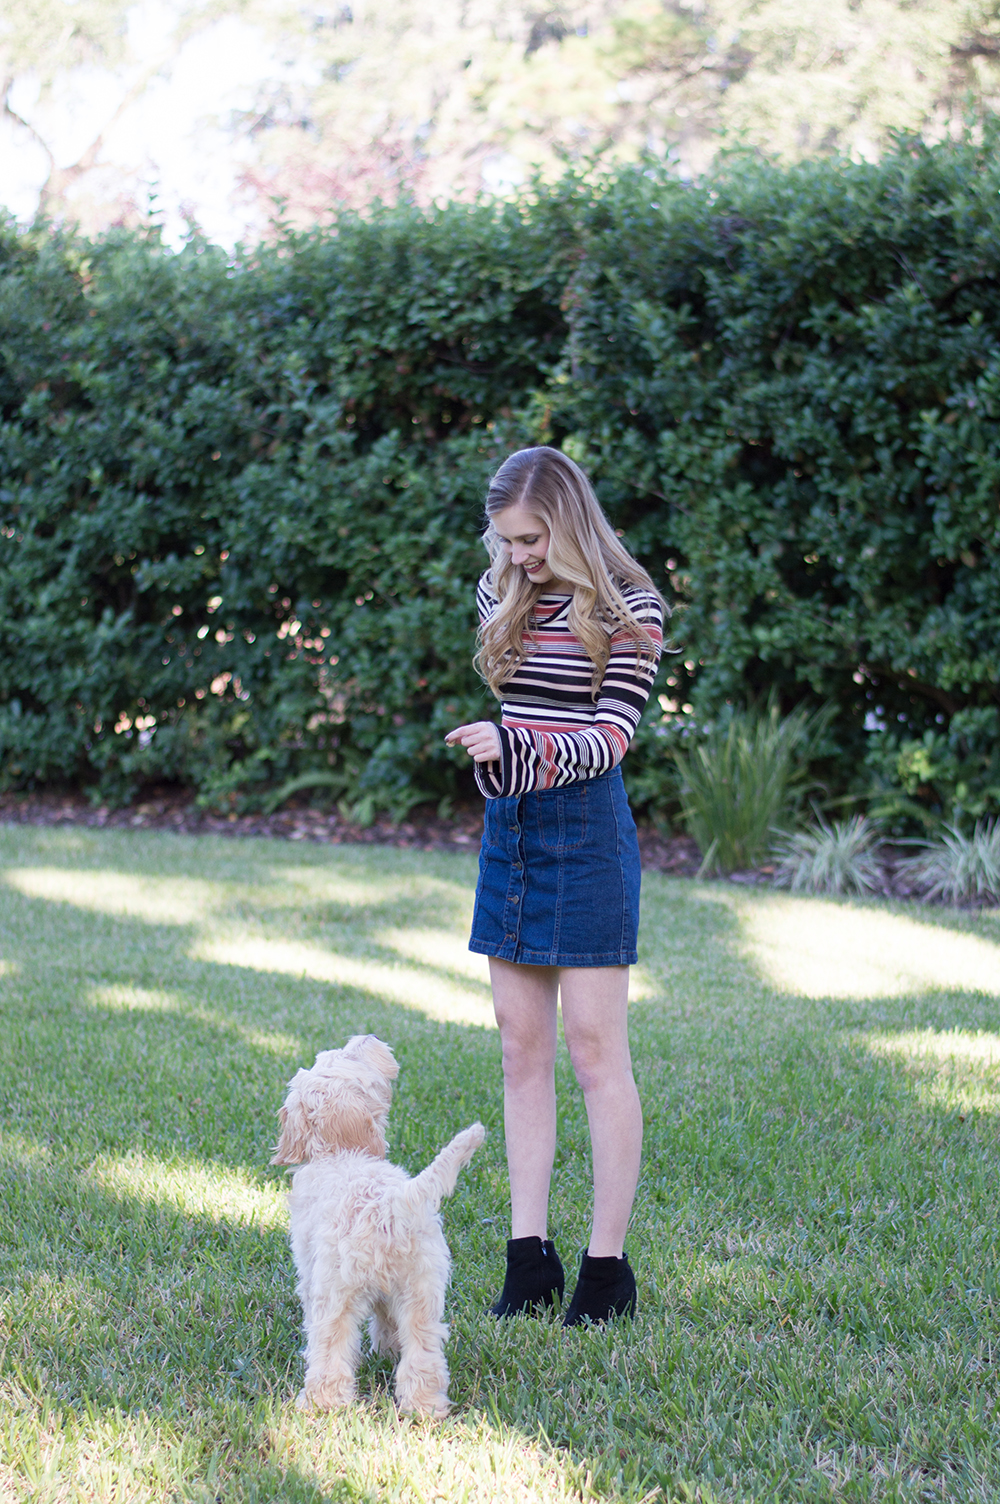 free-people-styelled-blog-fashion-blogger-street-style-fblogger-sweater-weather-top-shop-topshop-forever-21-labradoodle-20